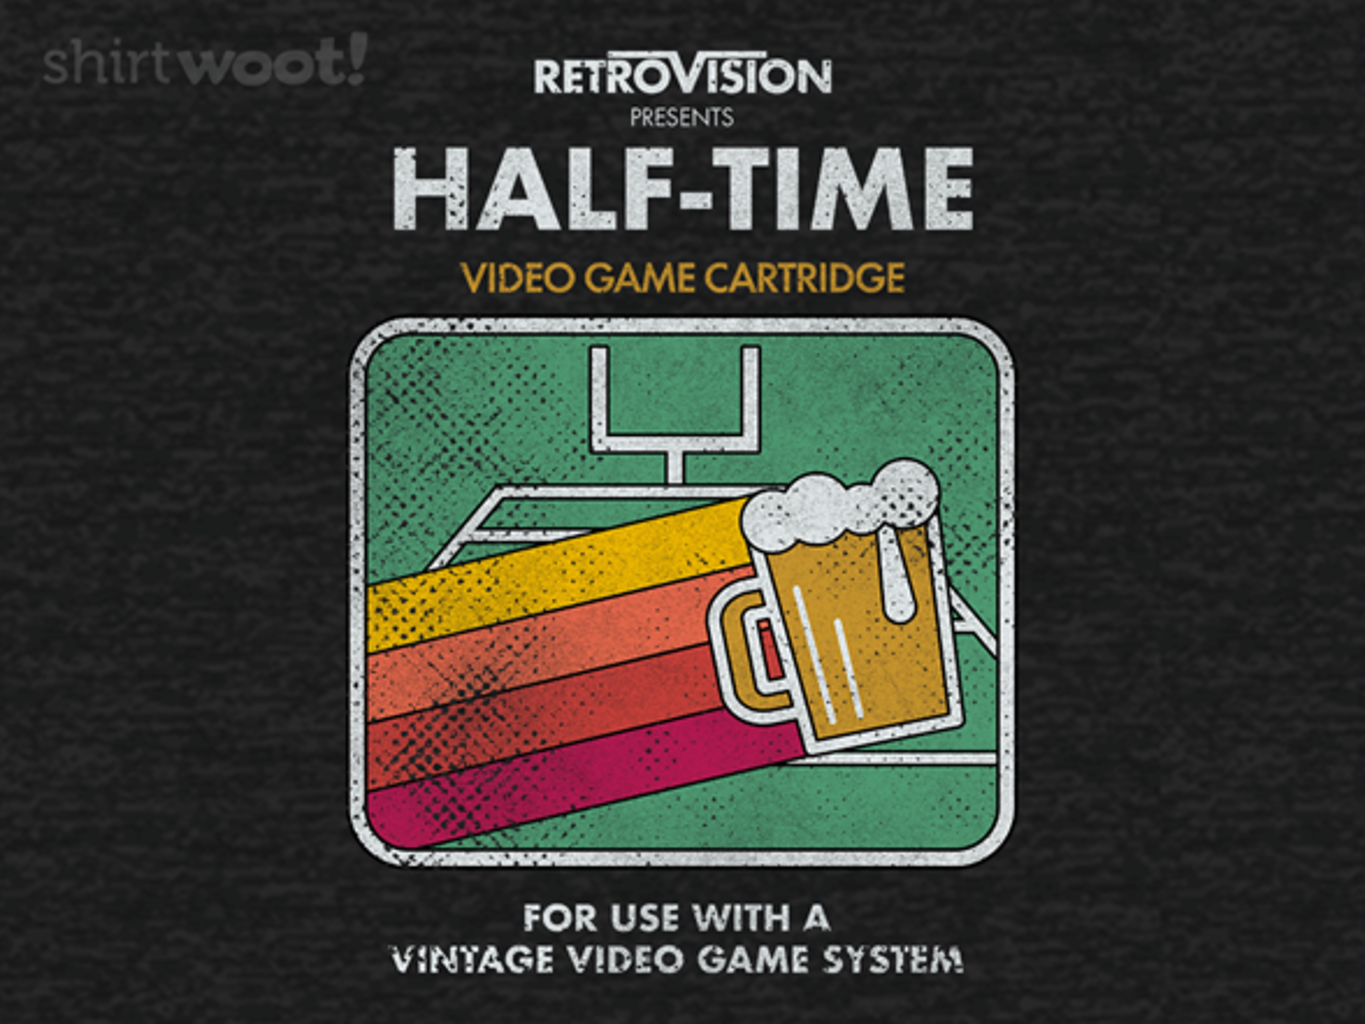 Woot!: Half-Time the Game